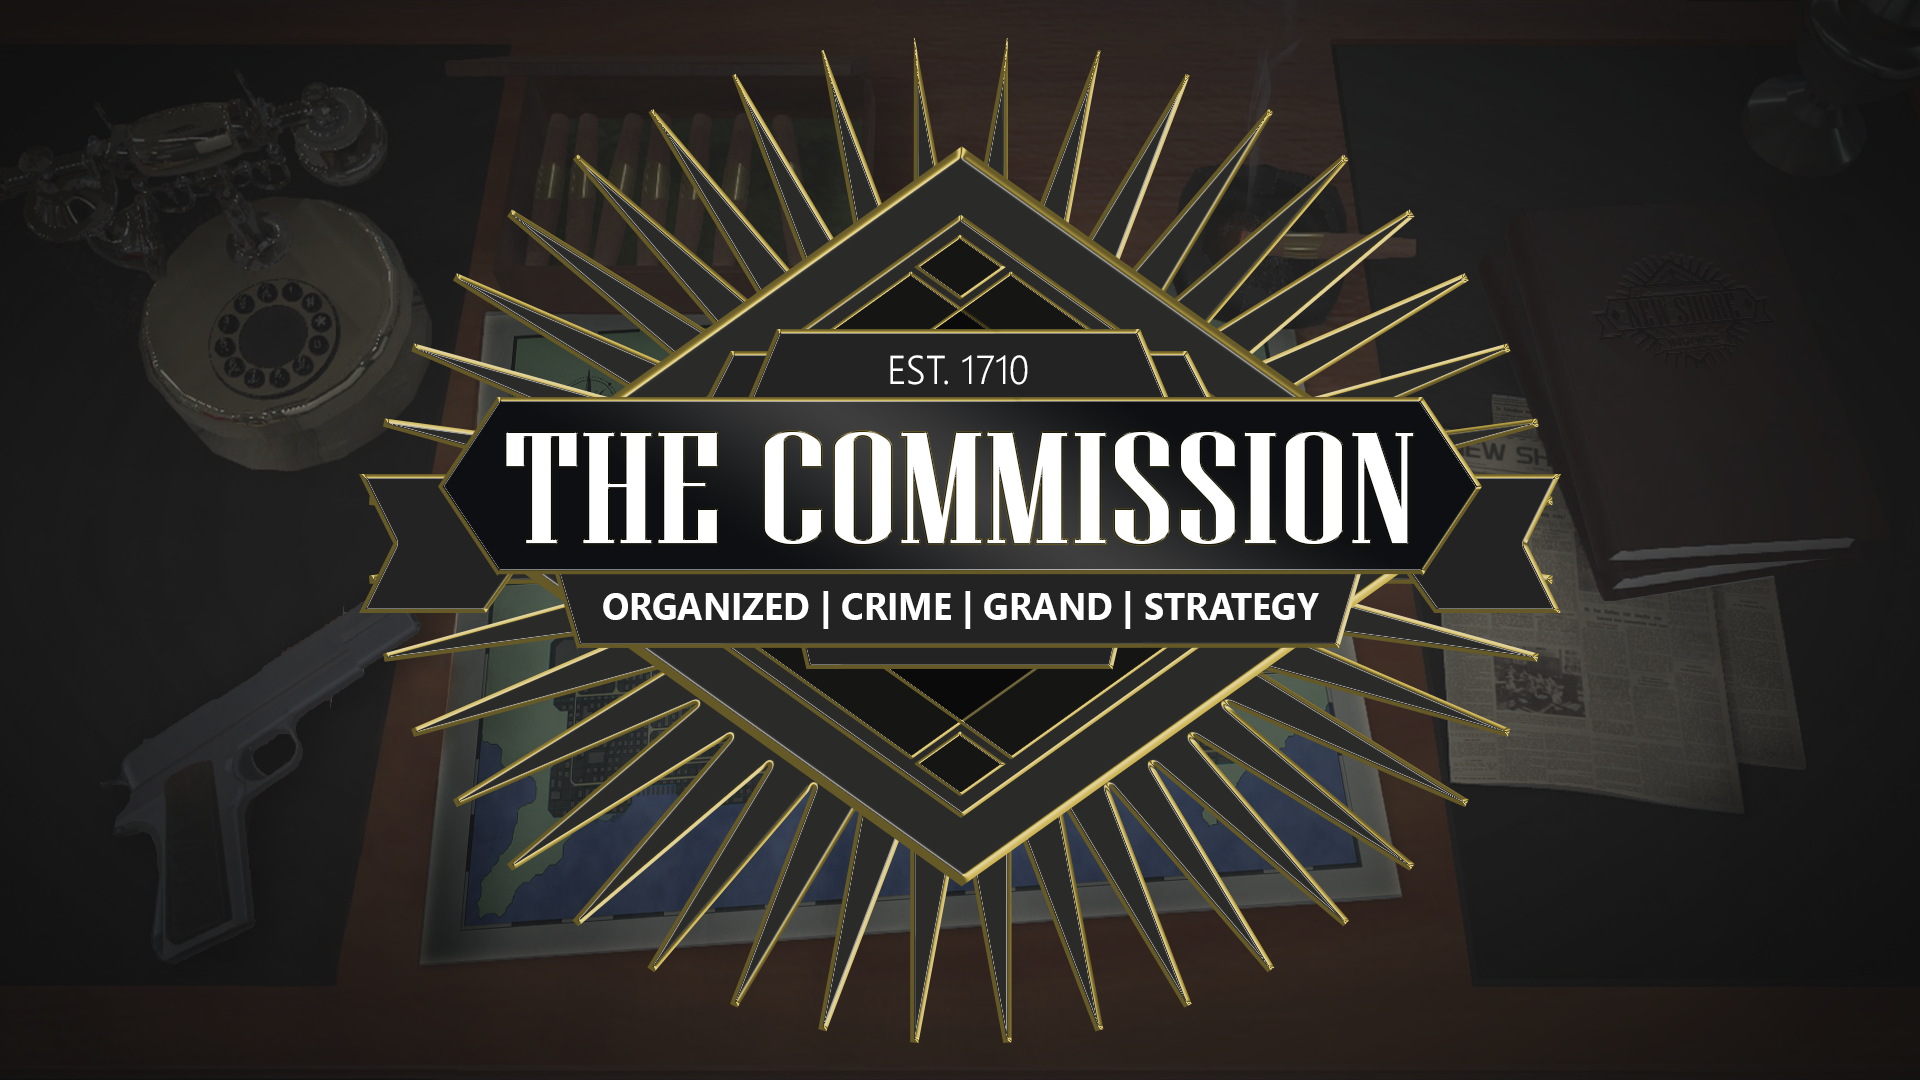 The Commission: Organized Crime, developed entirely by 302 Interactive for our client Two-Thirty Am Studios. Play as a Don of a mafia family and fight other families for control over the city of New Shore.